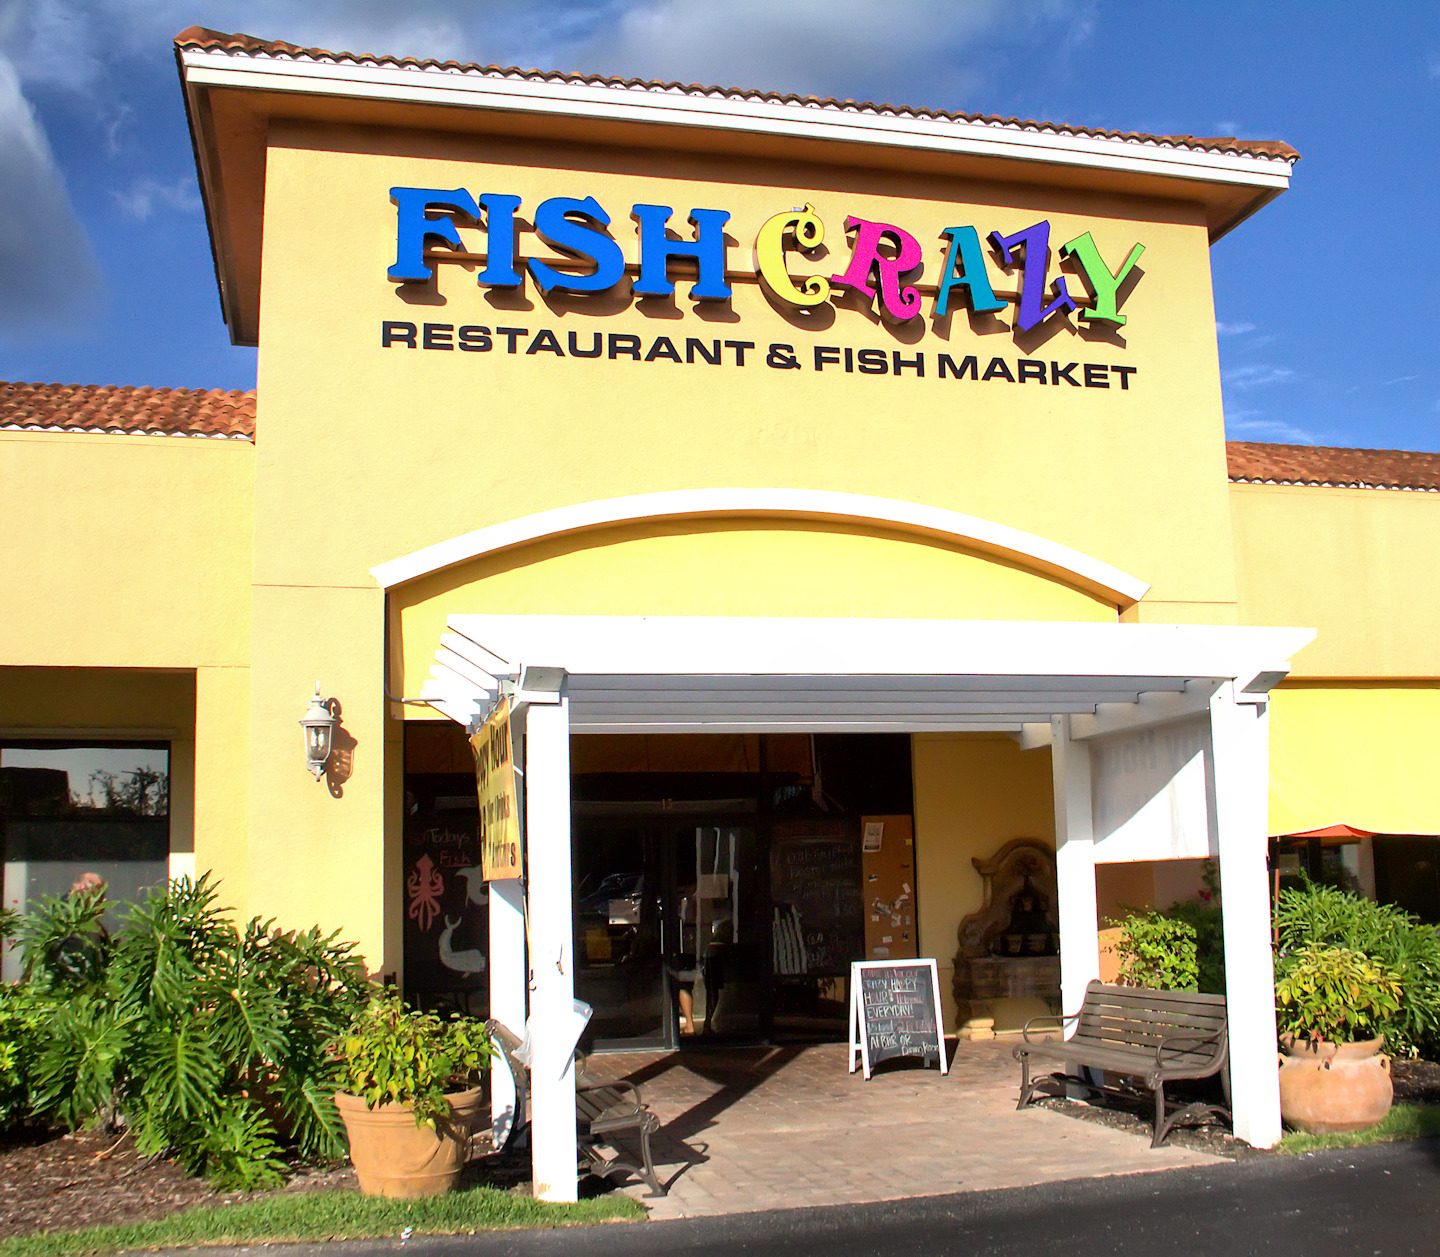 Southwest florida forks happy hour at fish crazy closed for Crazy fish restaurant